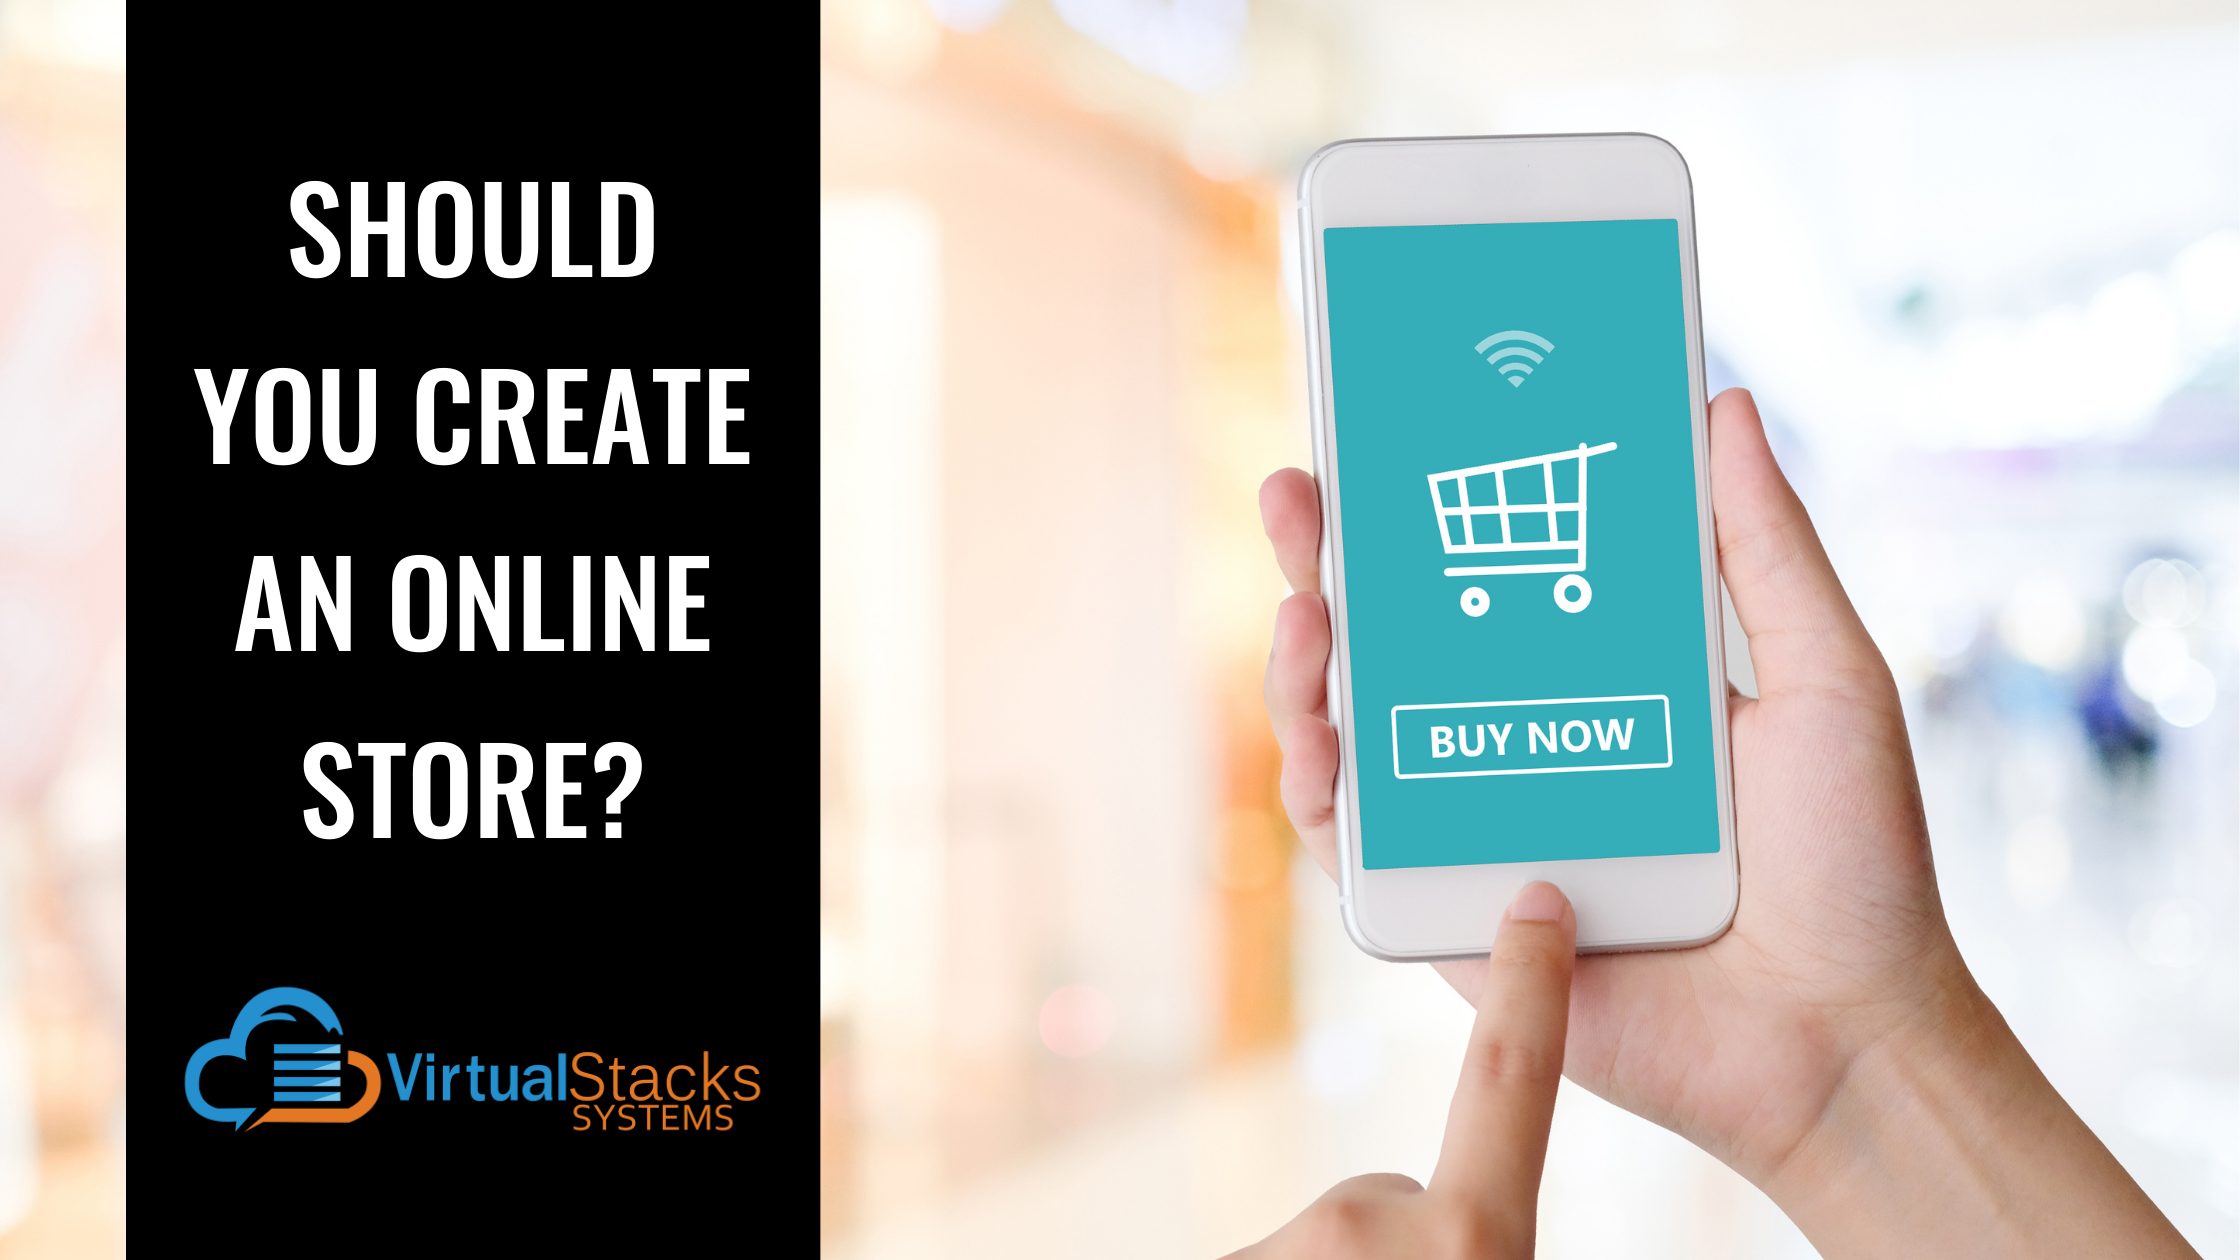 Should You Create an Online Store?